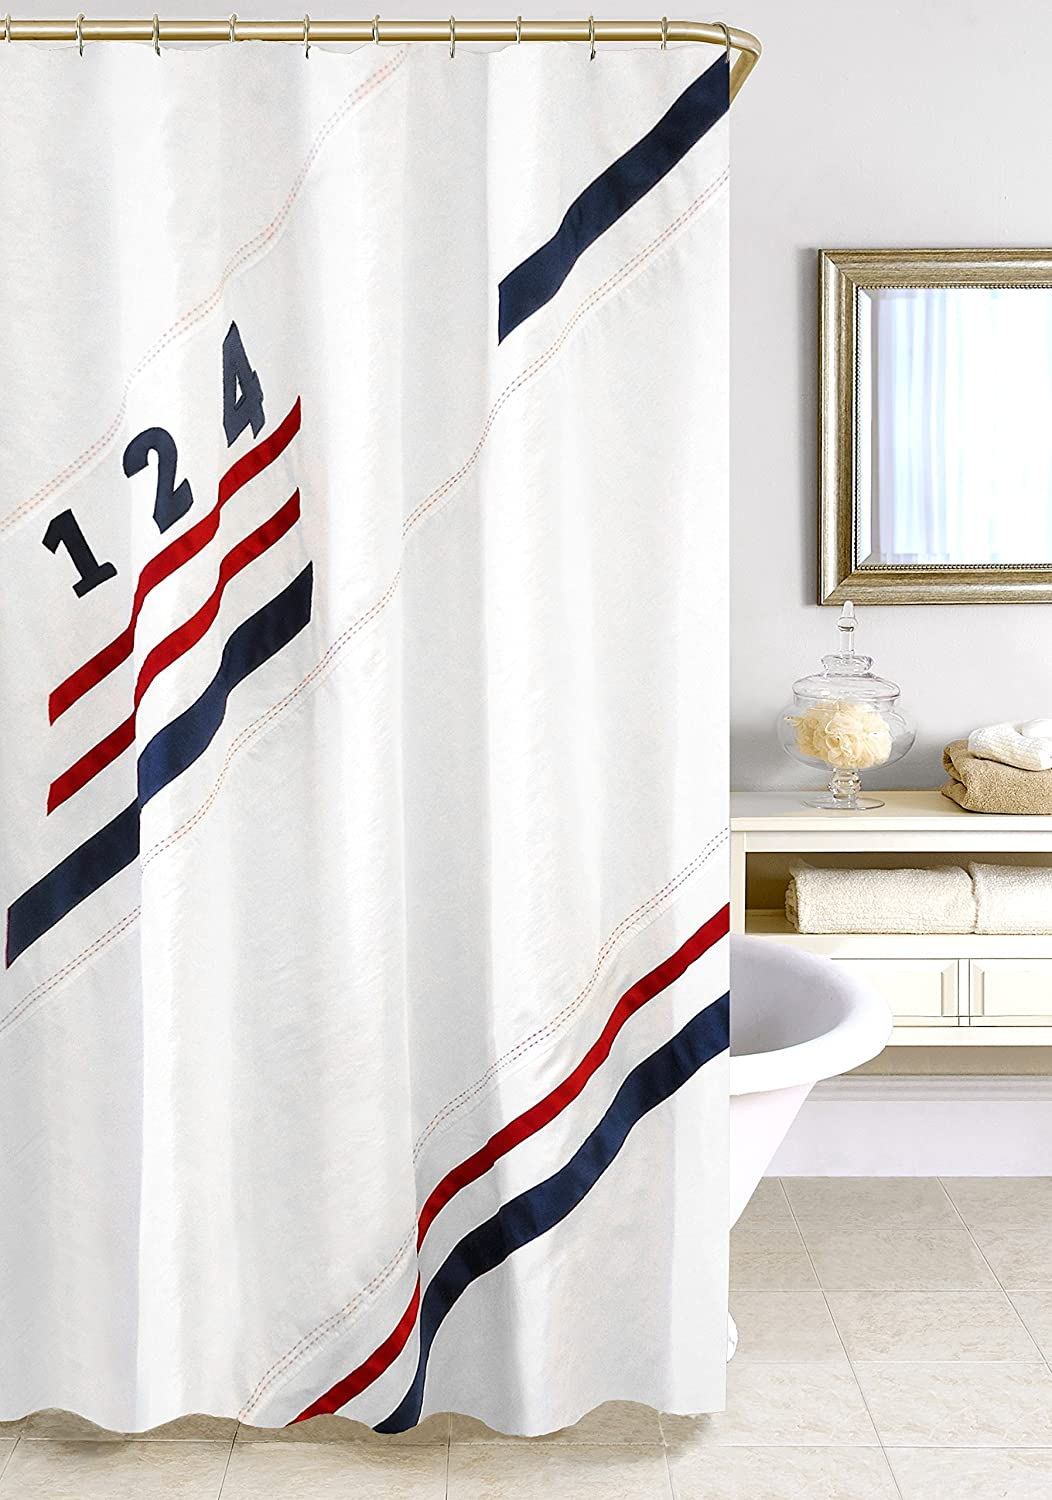 Amazon Homewear 75055 SHWR Set Sail Shower Curtain 70 X 72Multi Home Kitchen